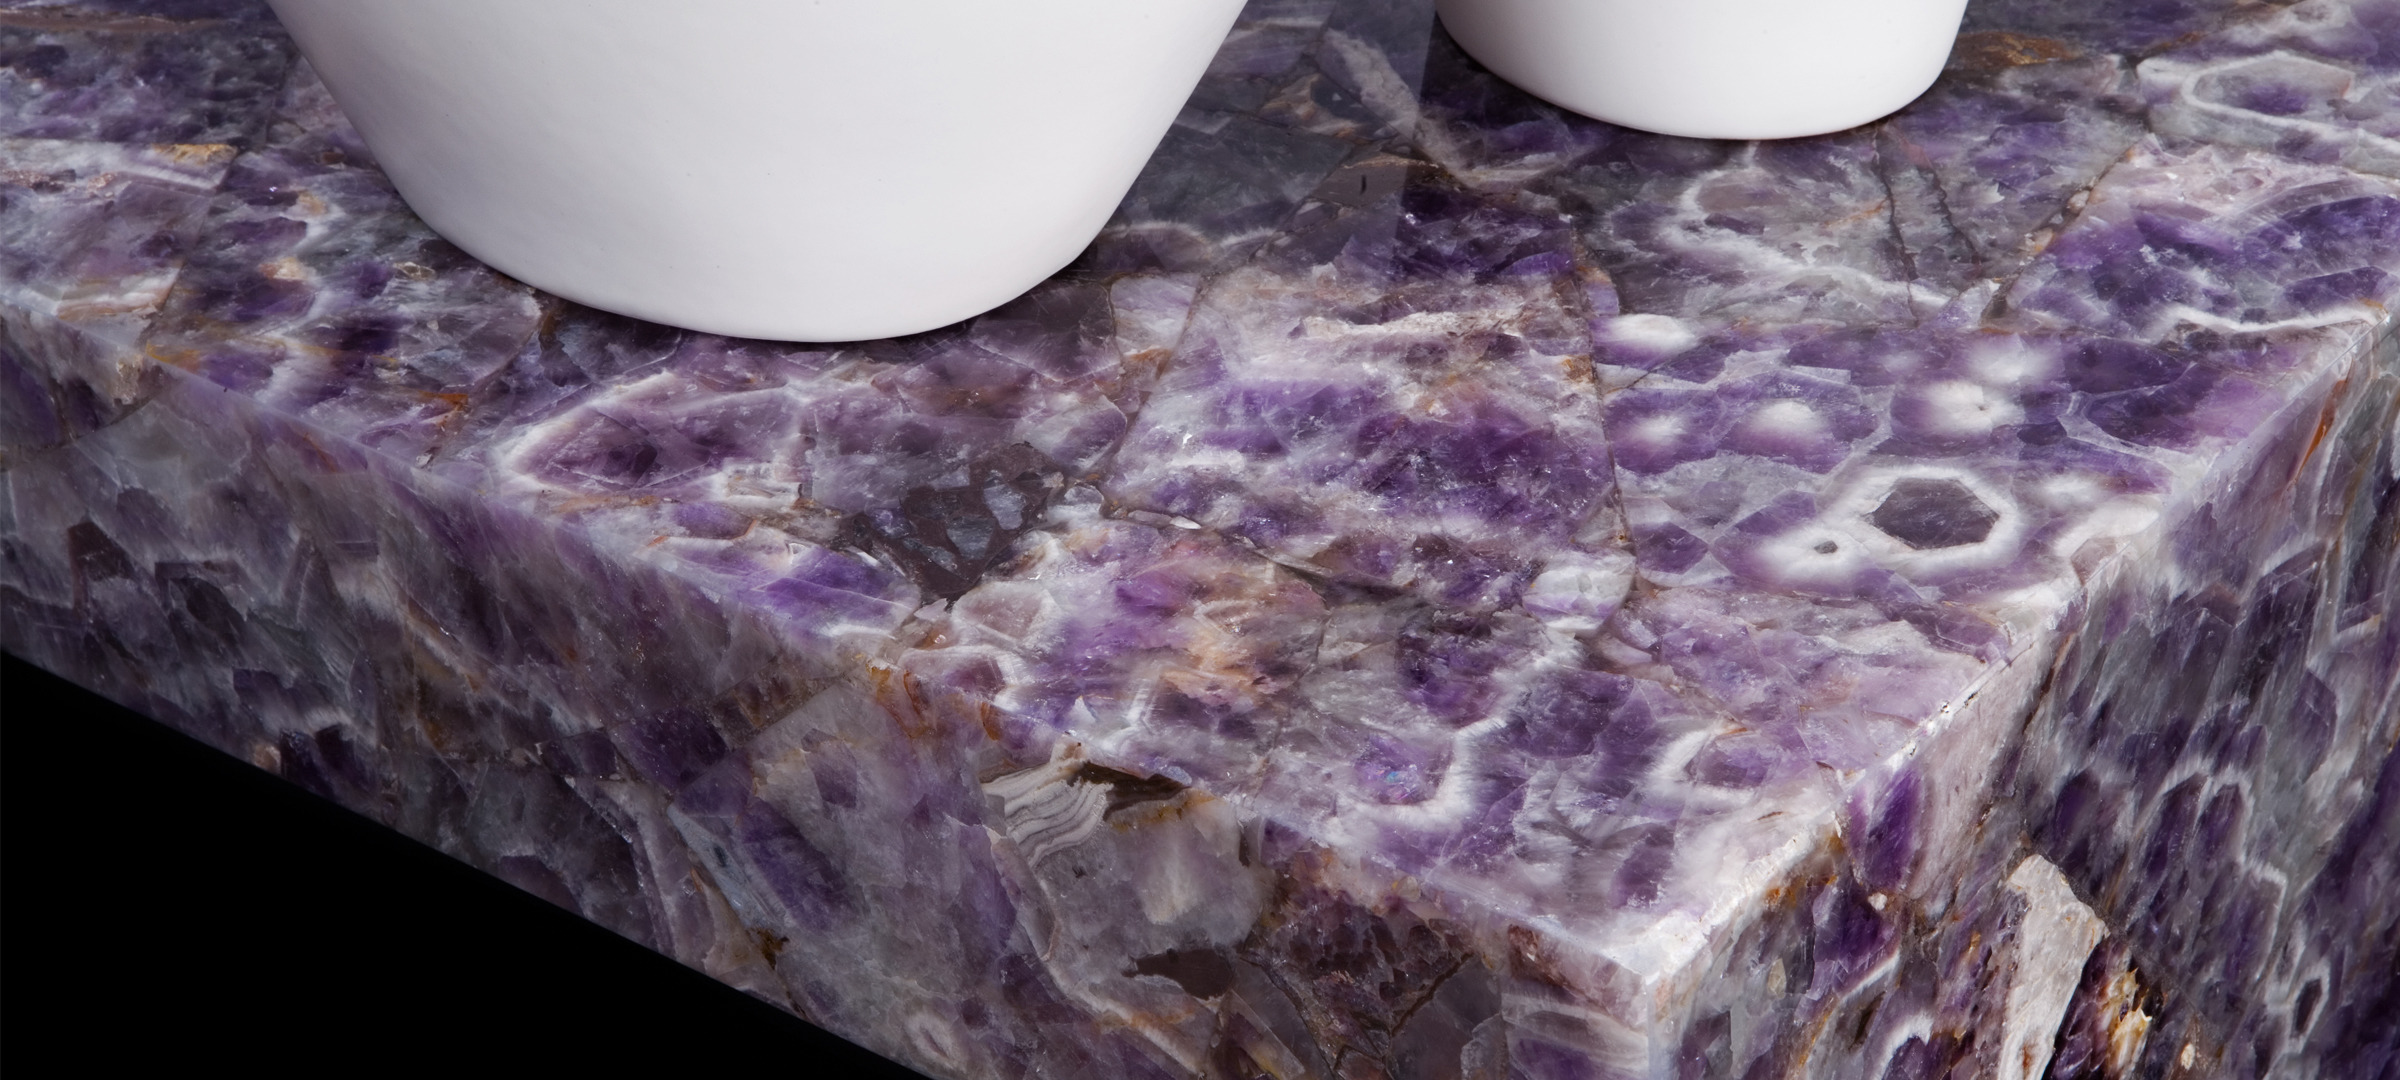 Caesarstone Viola Quartz Gemstone Semi Precious Kitchen Countertops